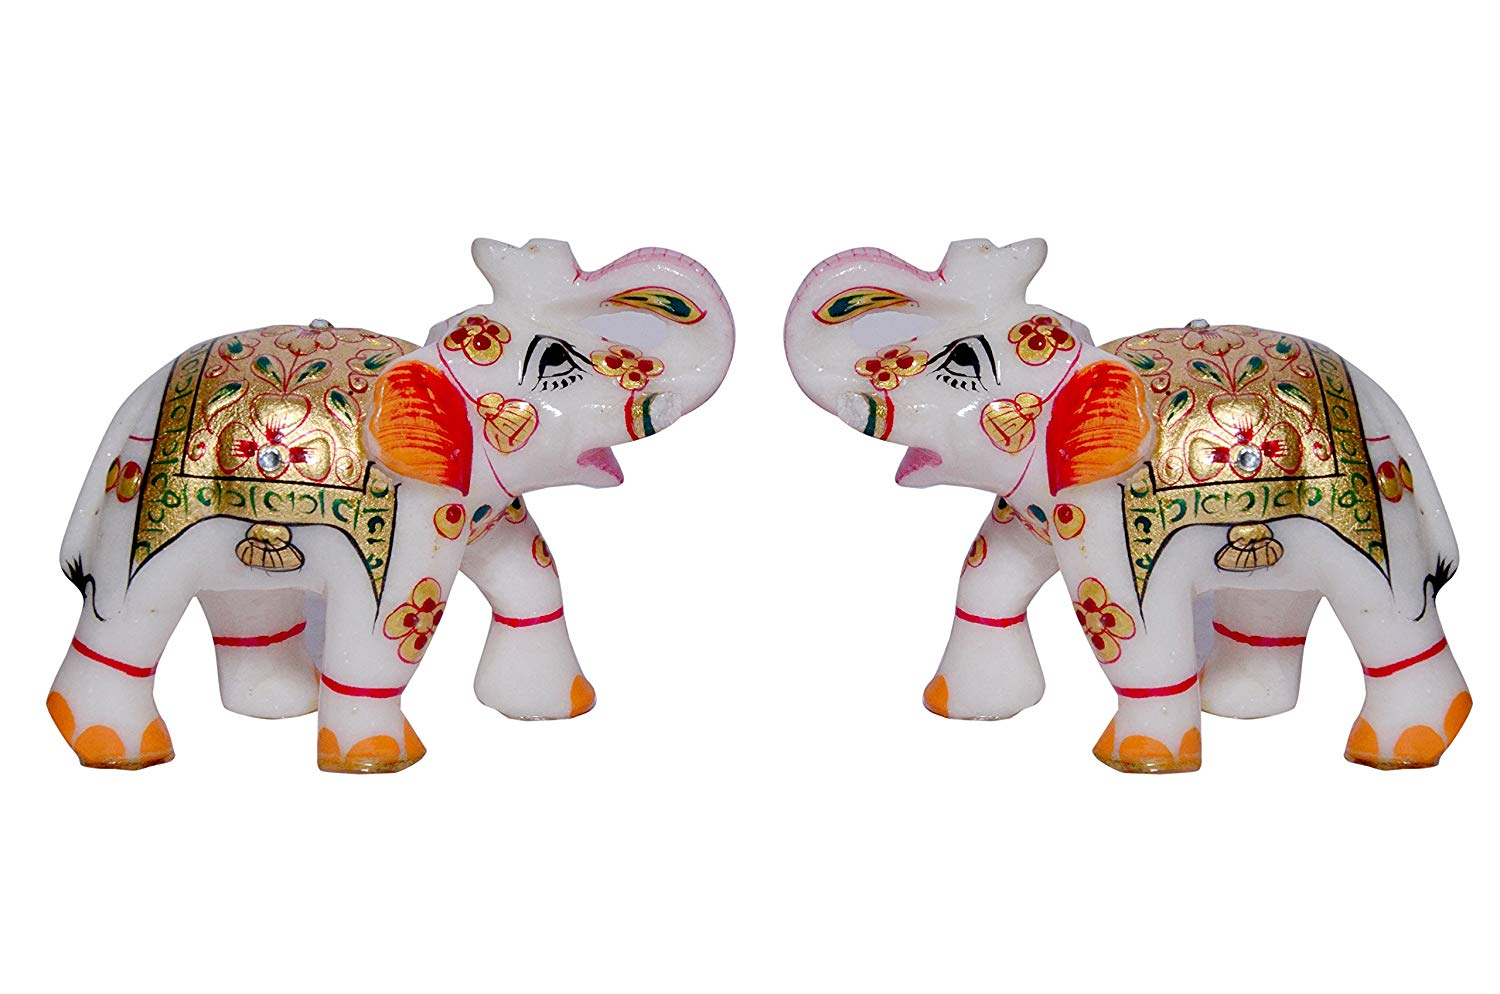 MARBLE DECORATIVE WITH HANDPAINITNG  ELEPHANT